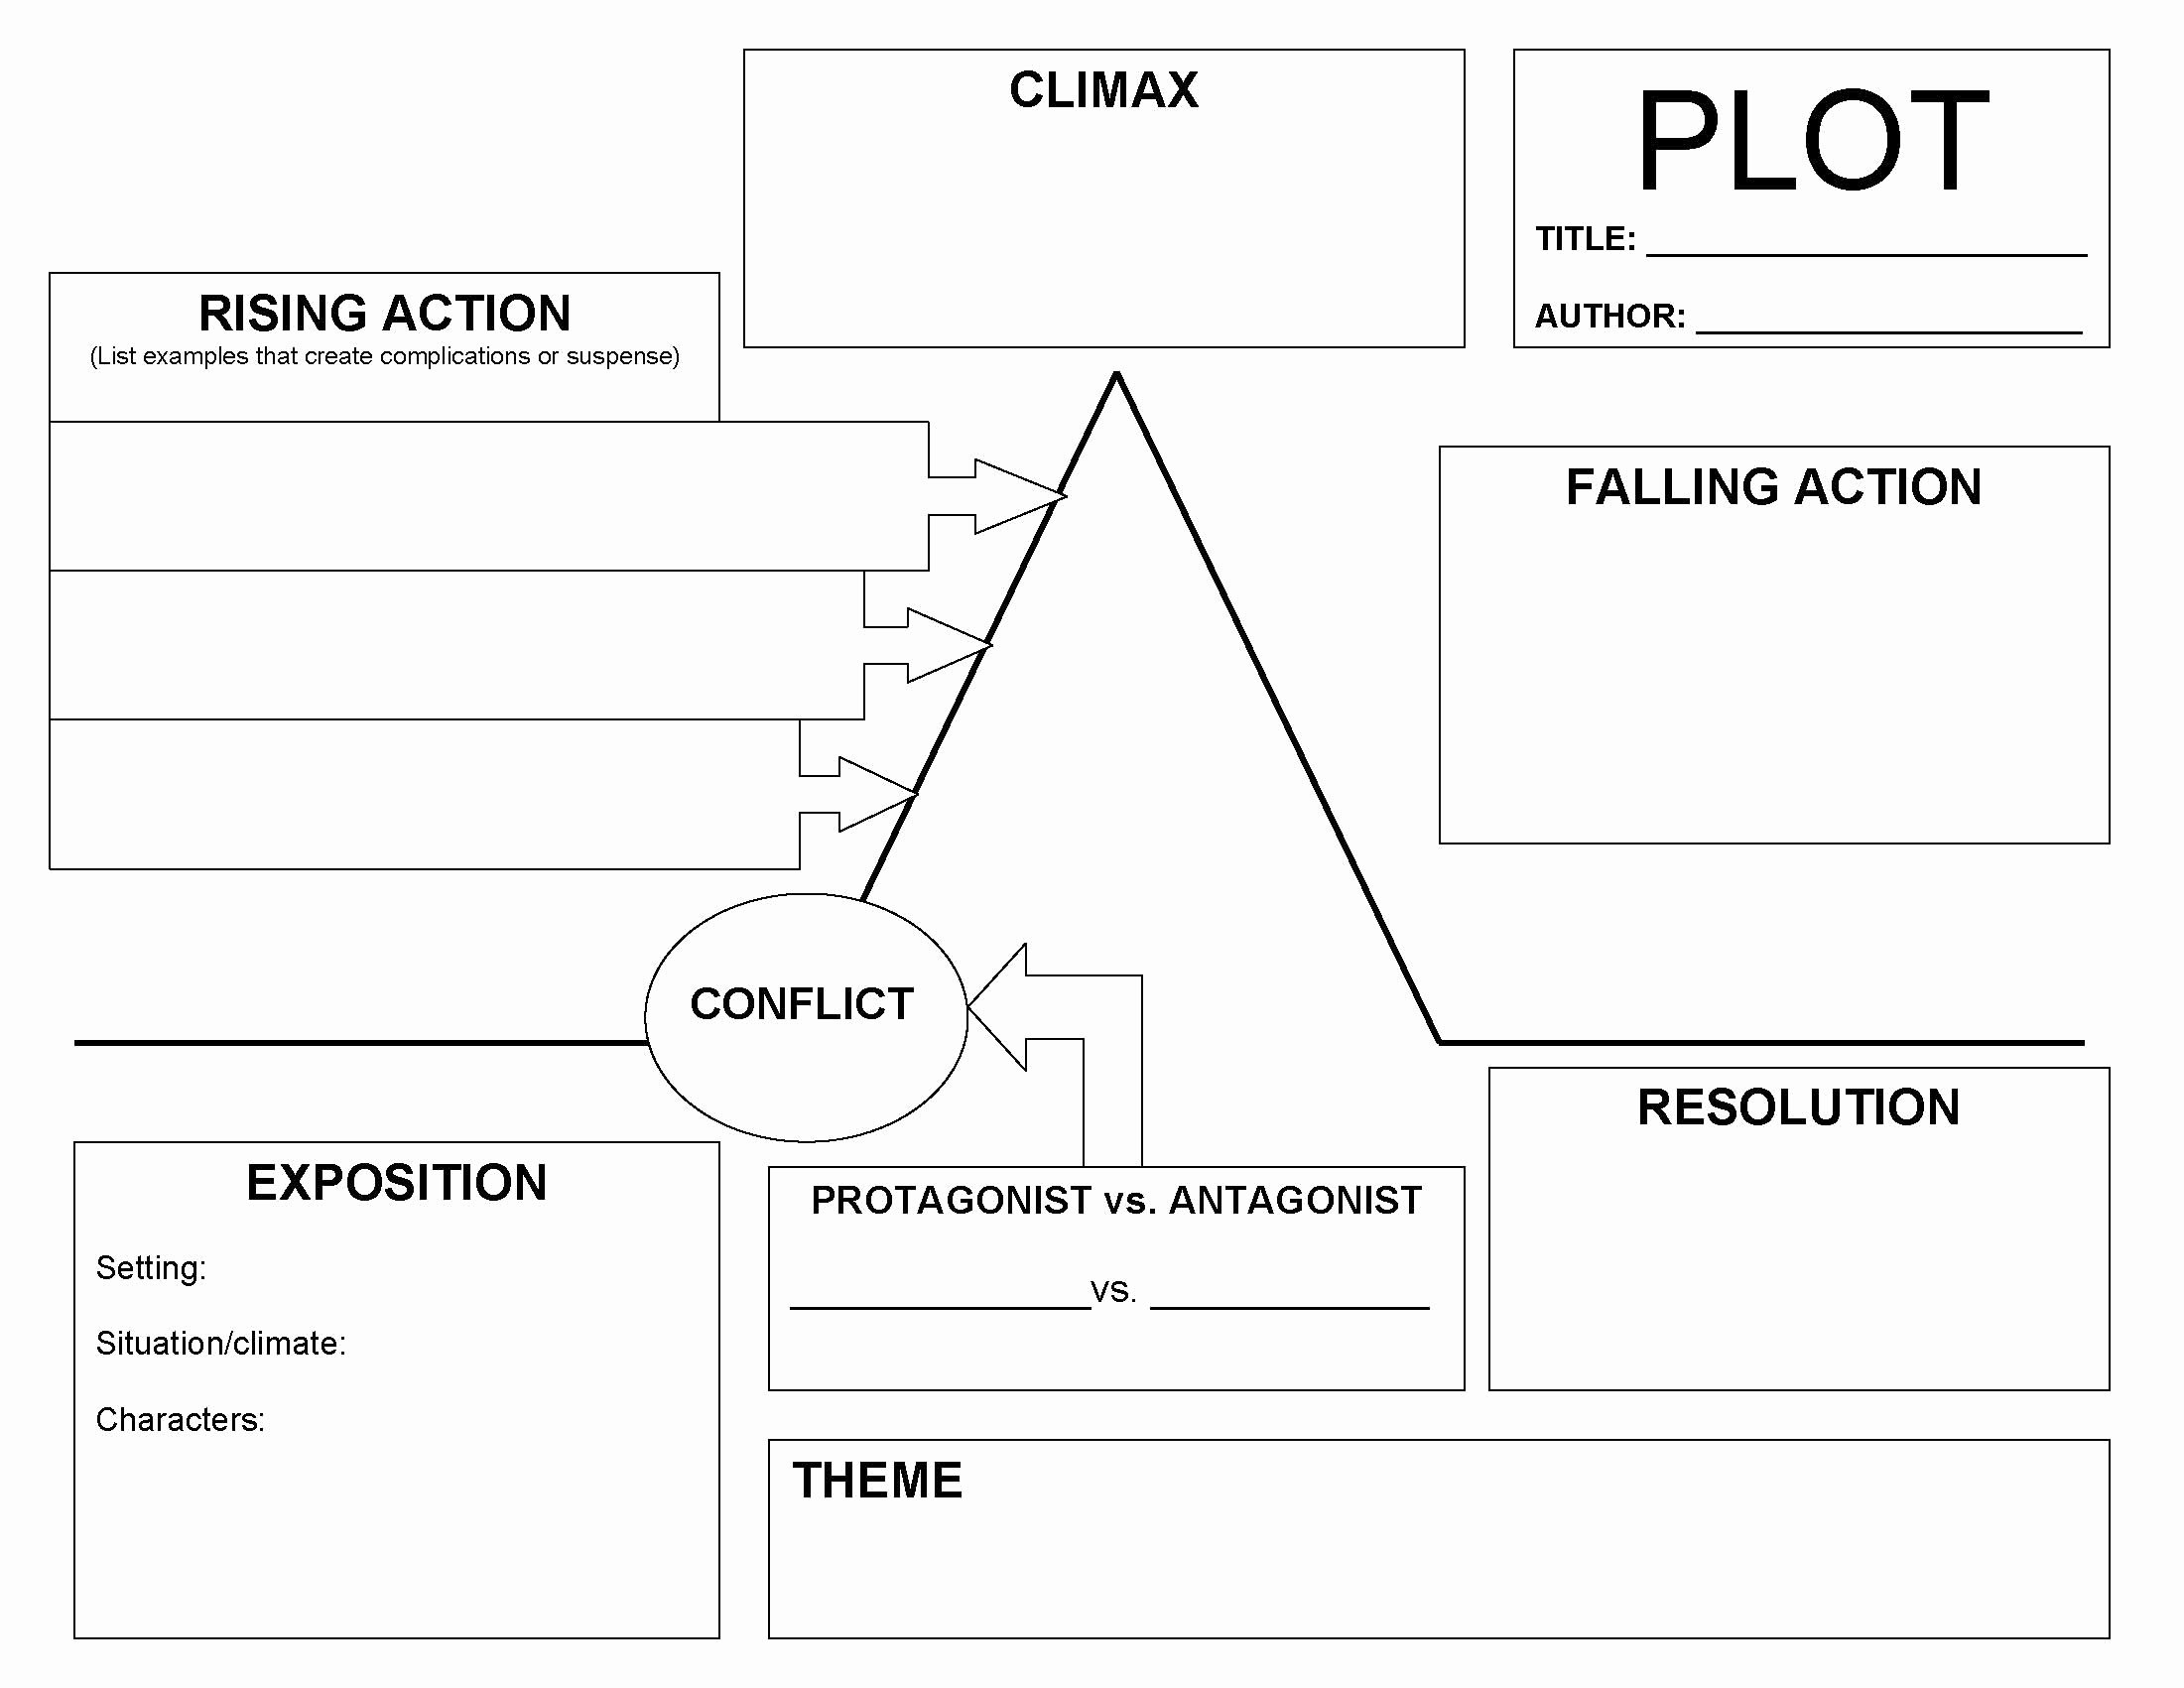 Plot Diagram Graphic organizer Elegant Scriptwriting Plot Graphic organizer